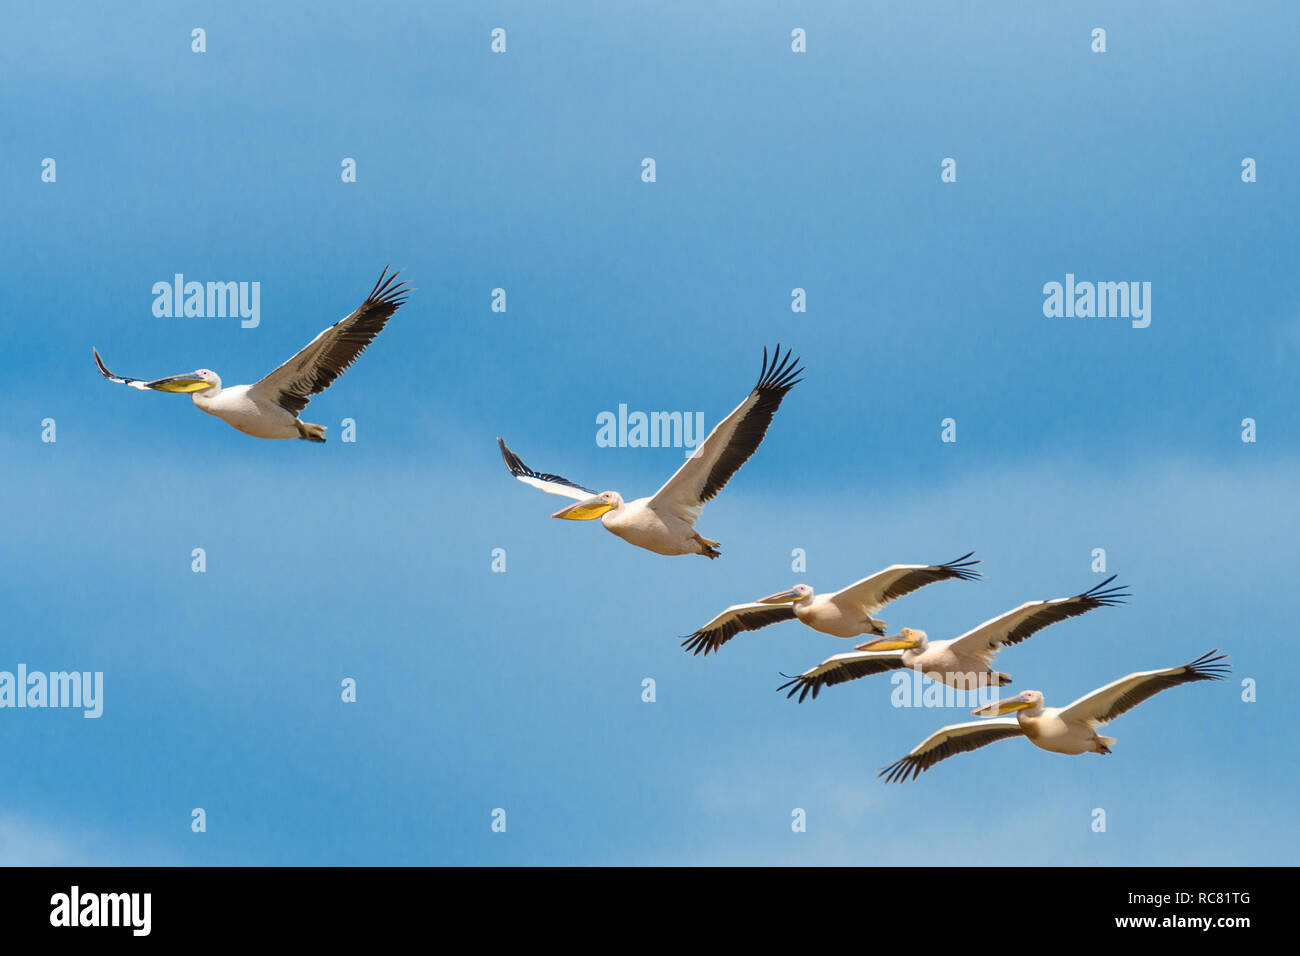 flying group of pelicans - Stock Image